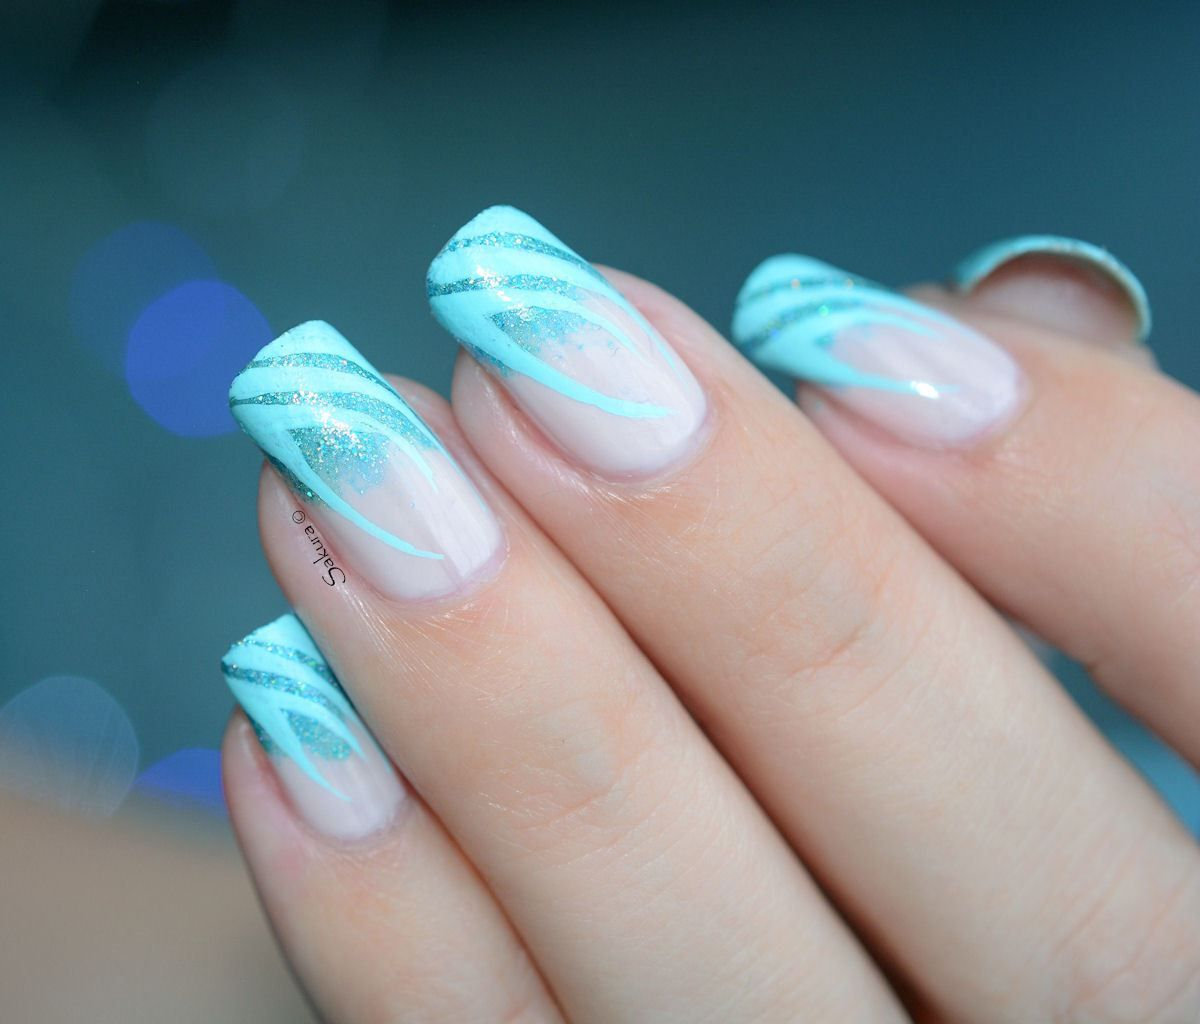 Nail Art French Zébrée | Pinterest | Ongles, Manicure and Hair style